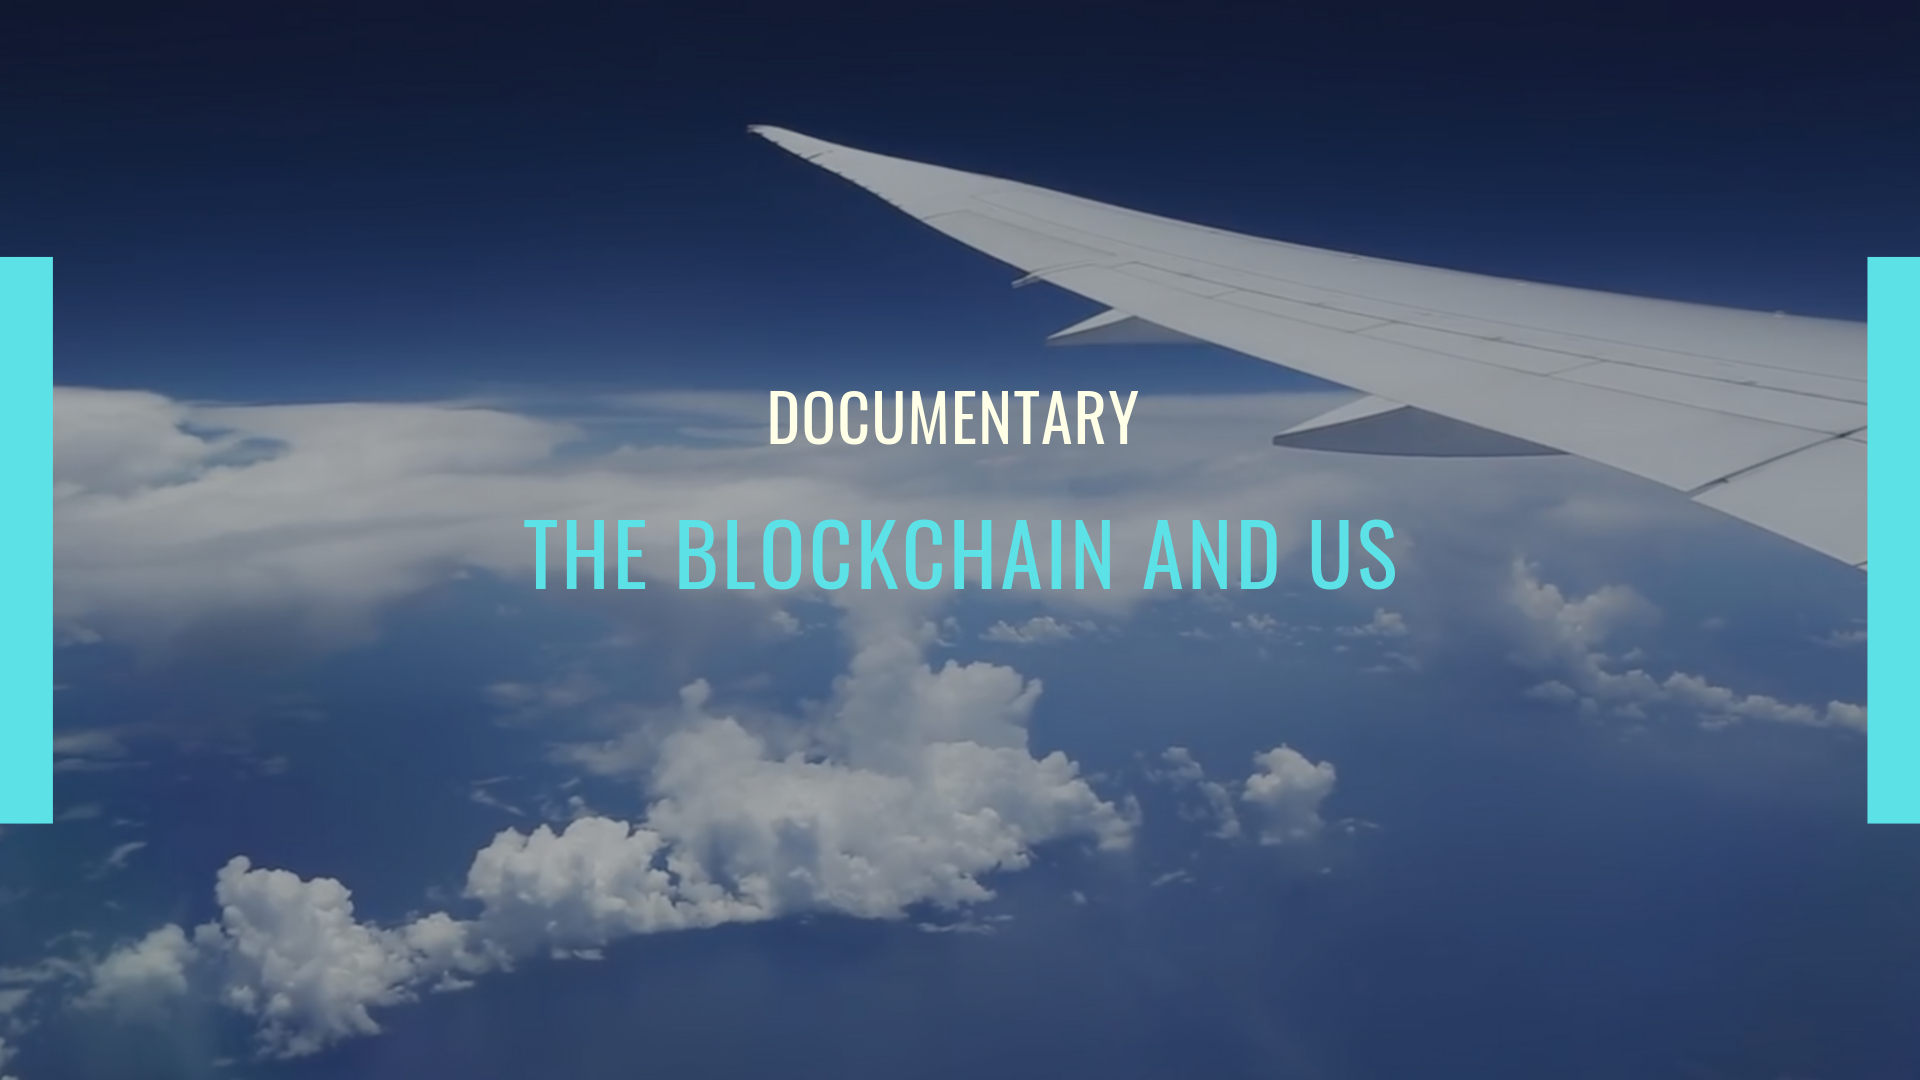 [Documentary] The Blockchain and Us